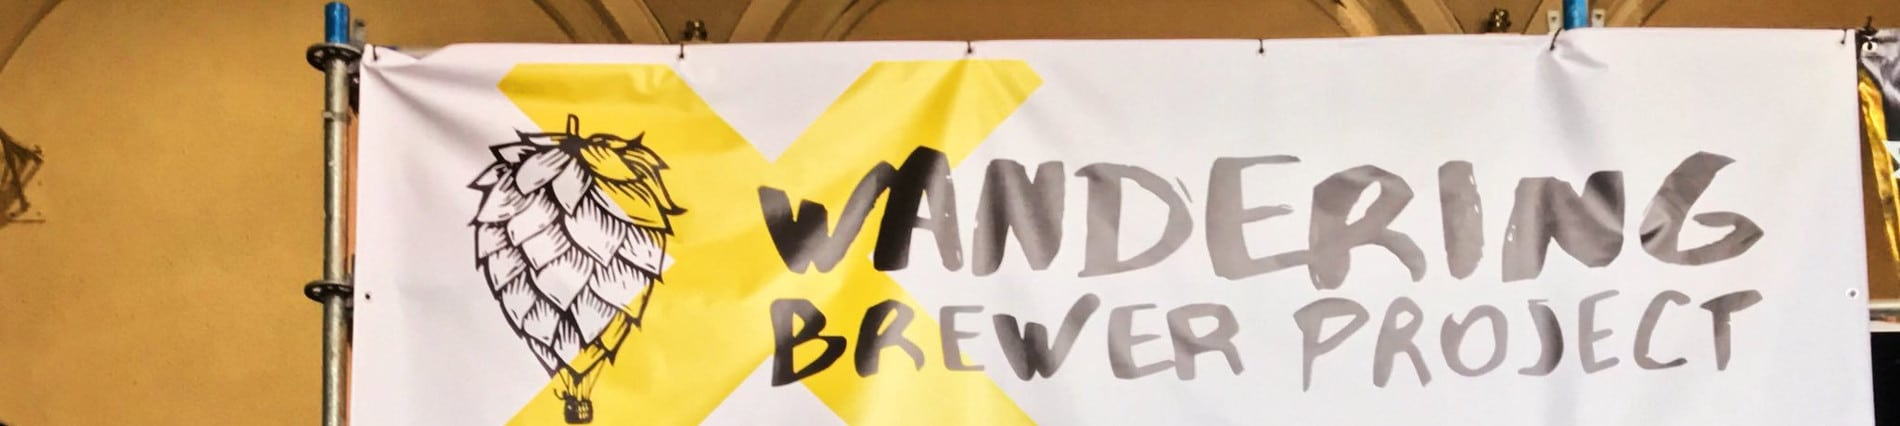 Wandering Brewer Project launches with XT